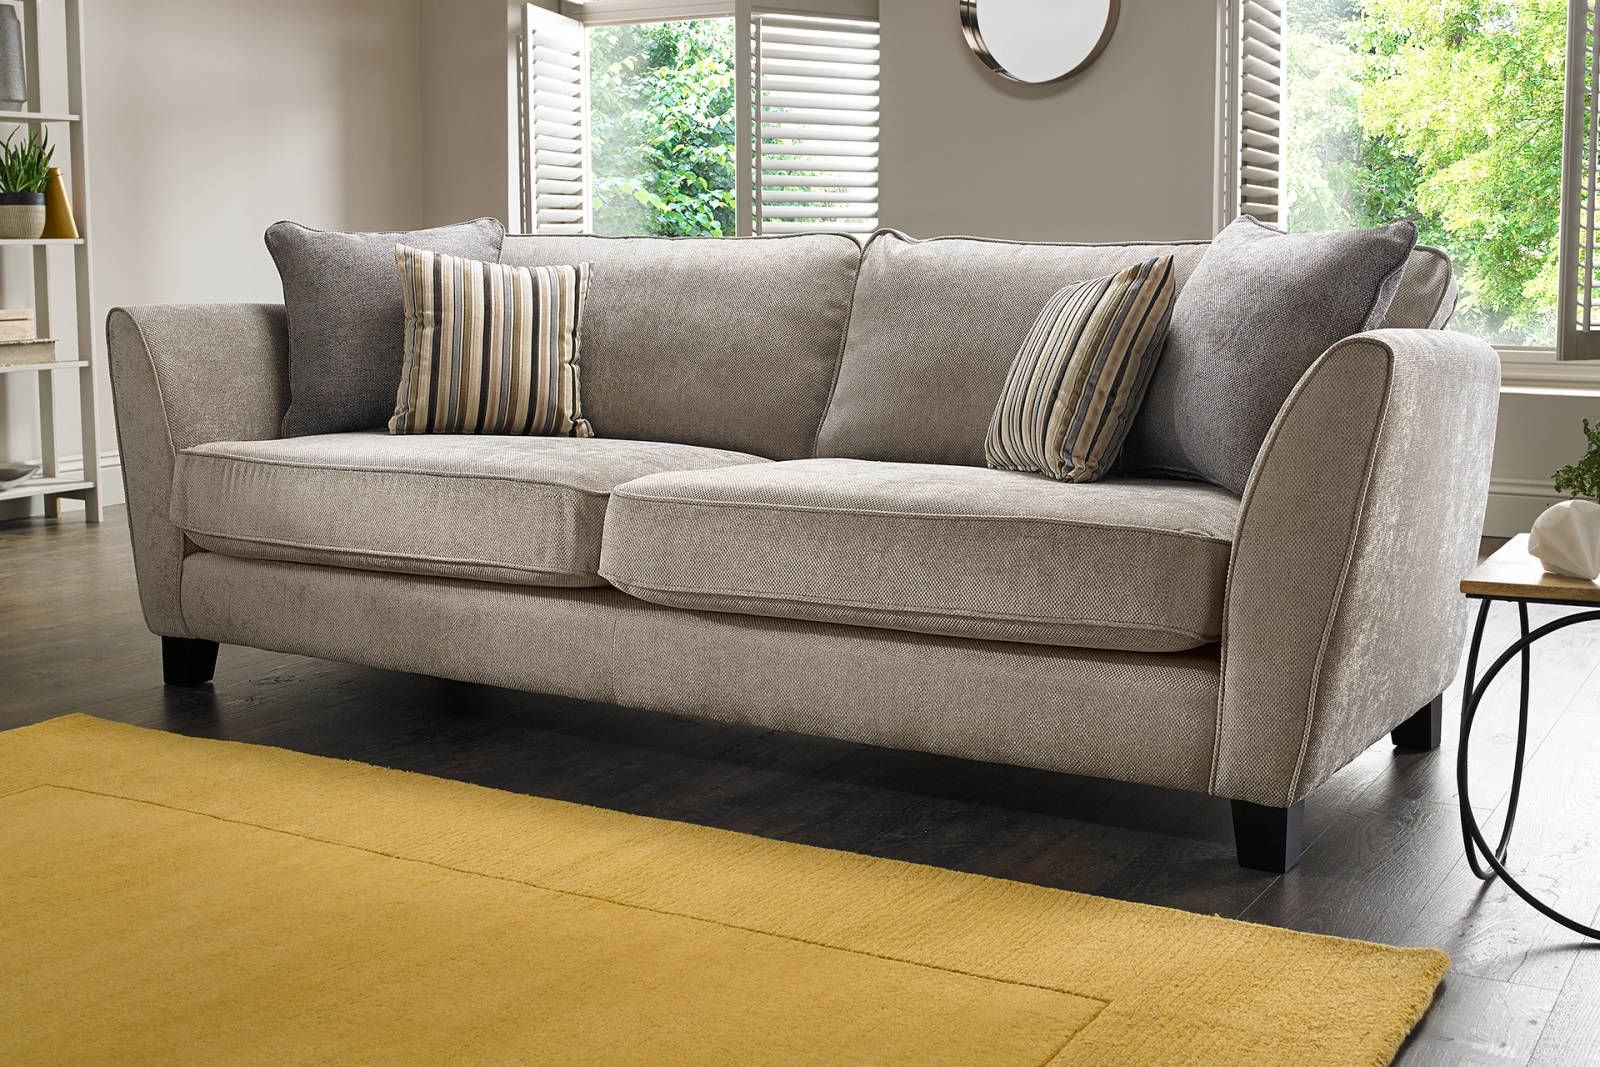 Canterbury Sofology With Canterbury Leather Sofas (Image 6 of 15)